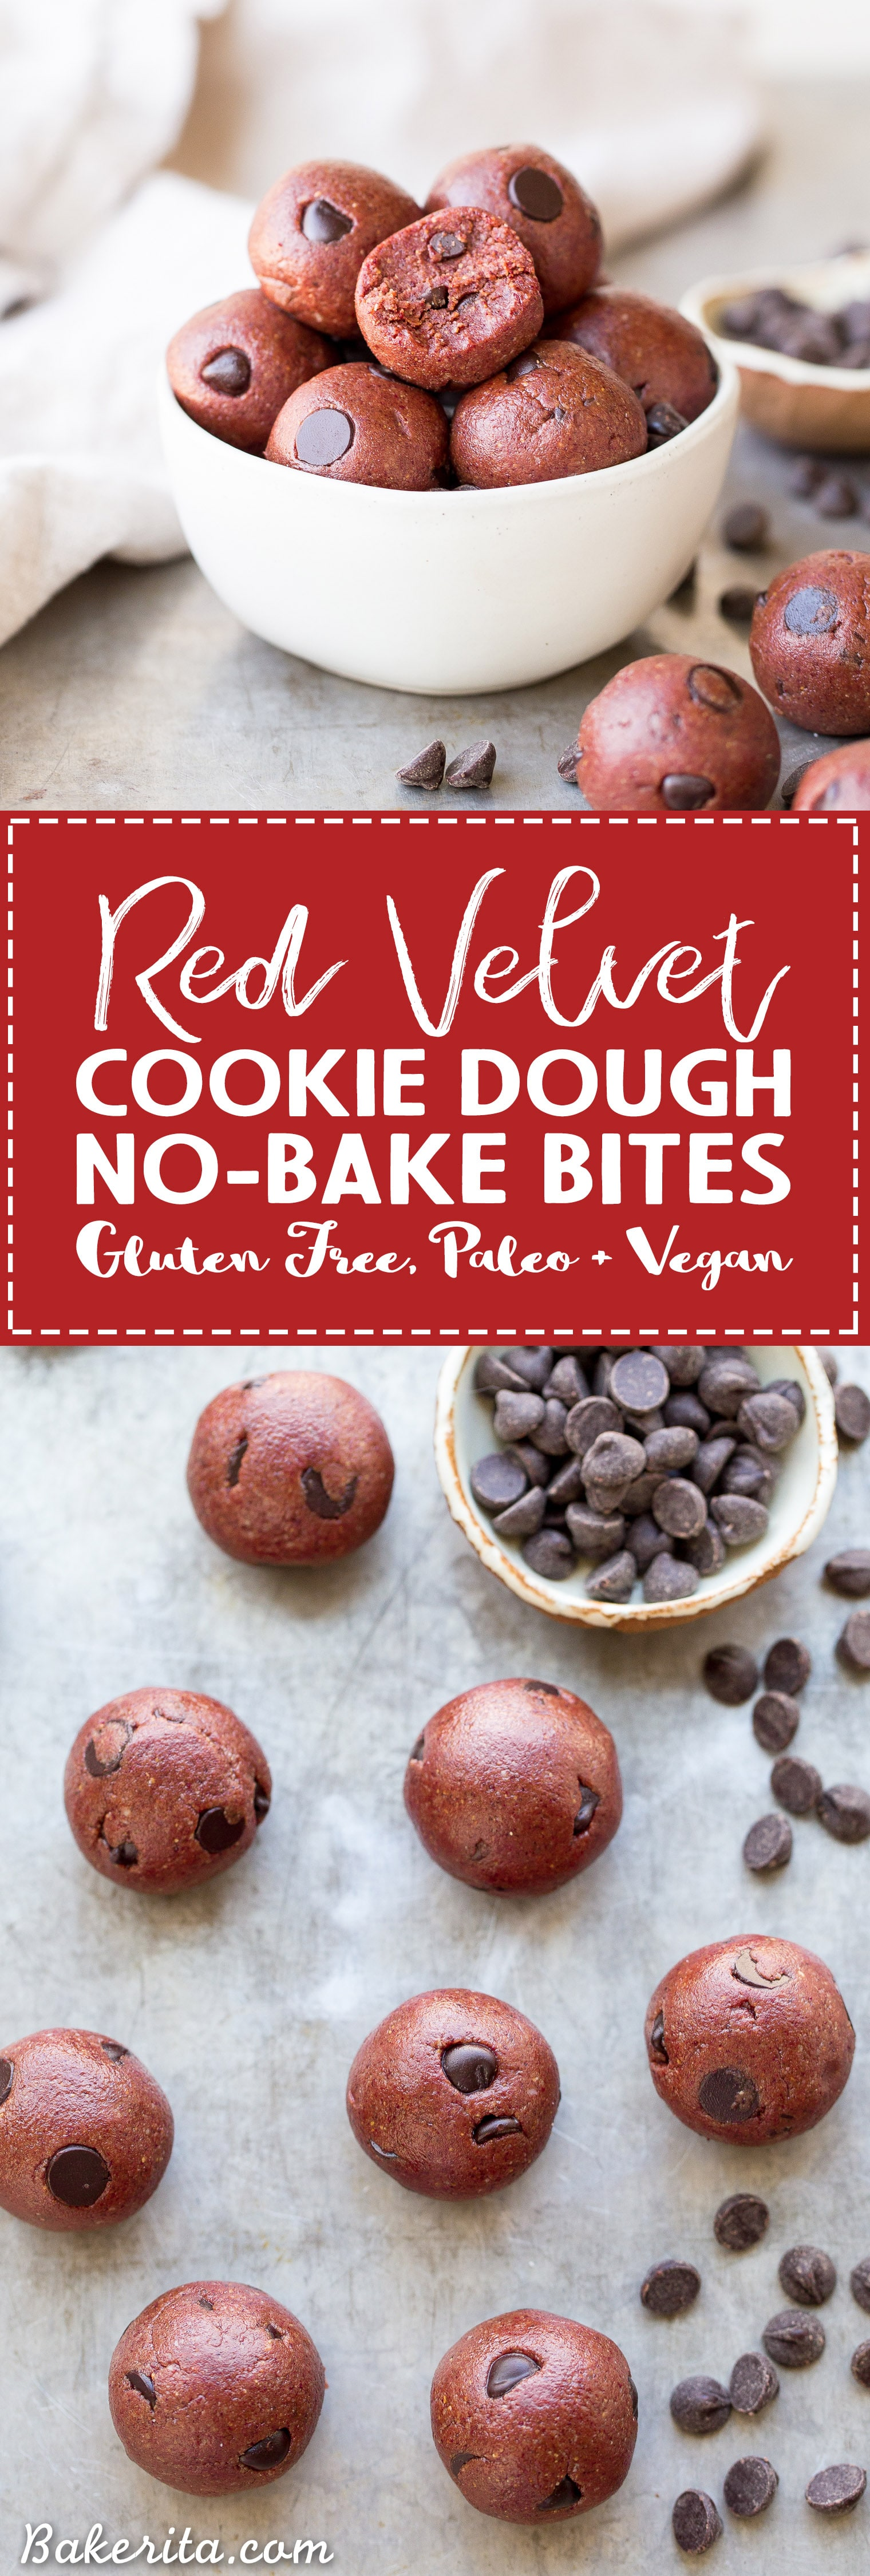 These Red Velvet Cookie Dough Bites are the perfect quick & easy snack or dessert! These gluten-free, paleo and vegan cookie dough bites are naturally tinted with a healthy superfood beet powder.